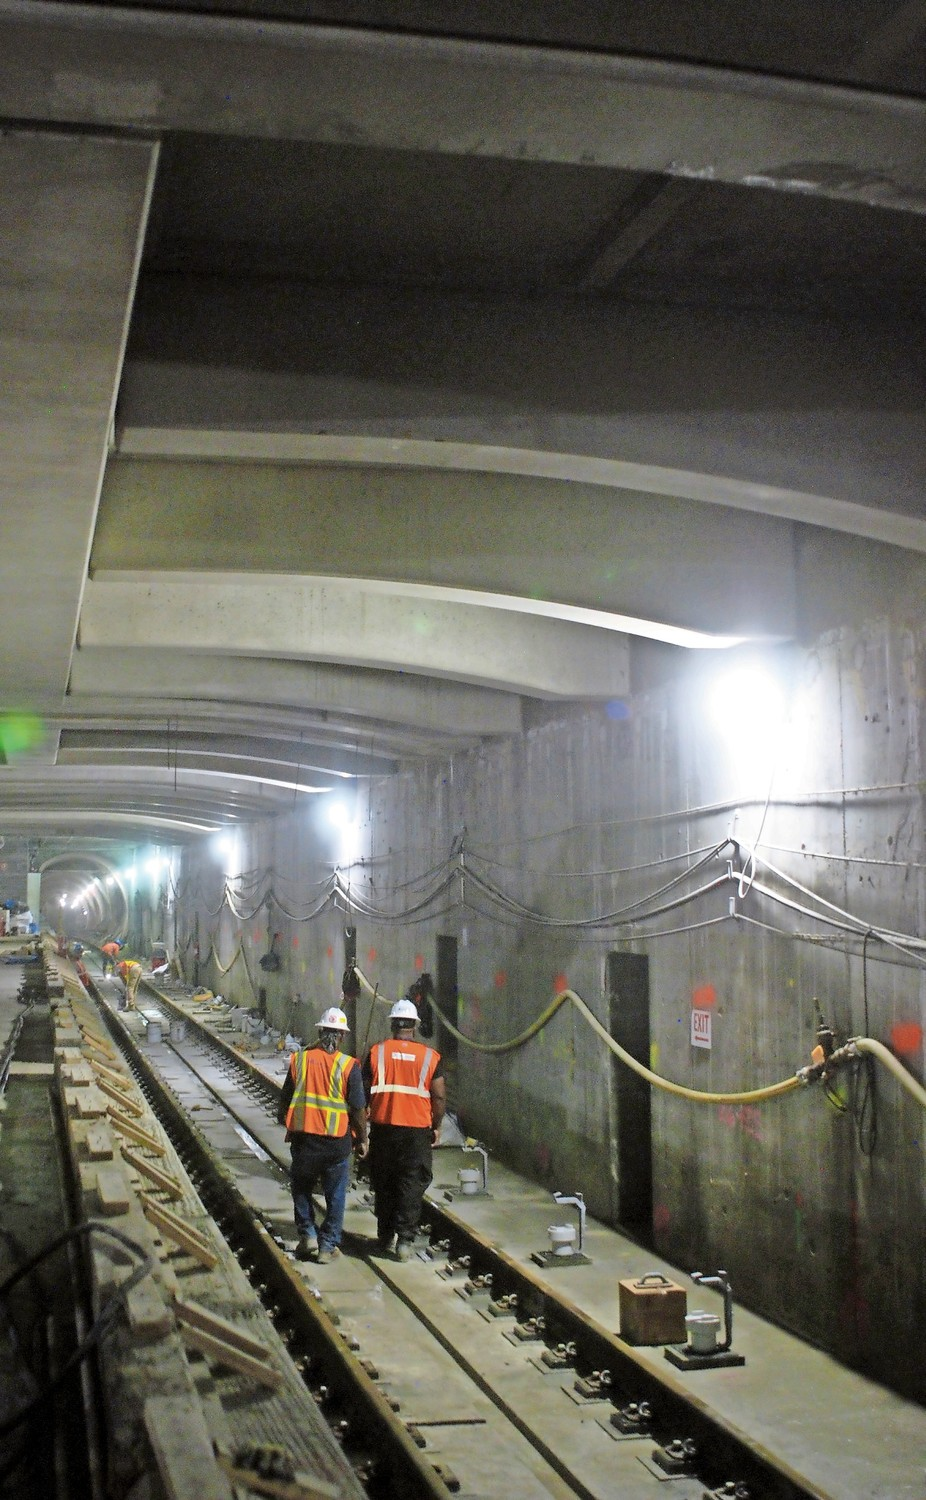 New LIRR tracks are going in under Grand Central. When complete, the LIRR station will have eight tracks and four platforms.